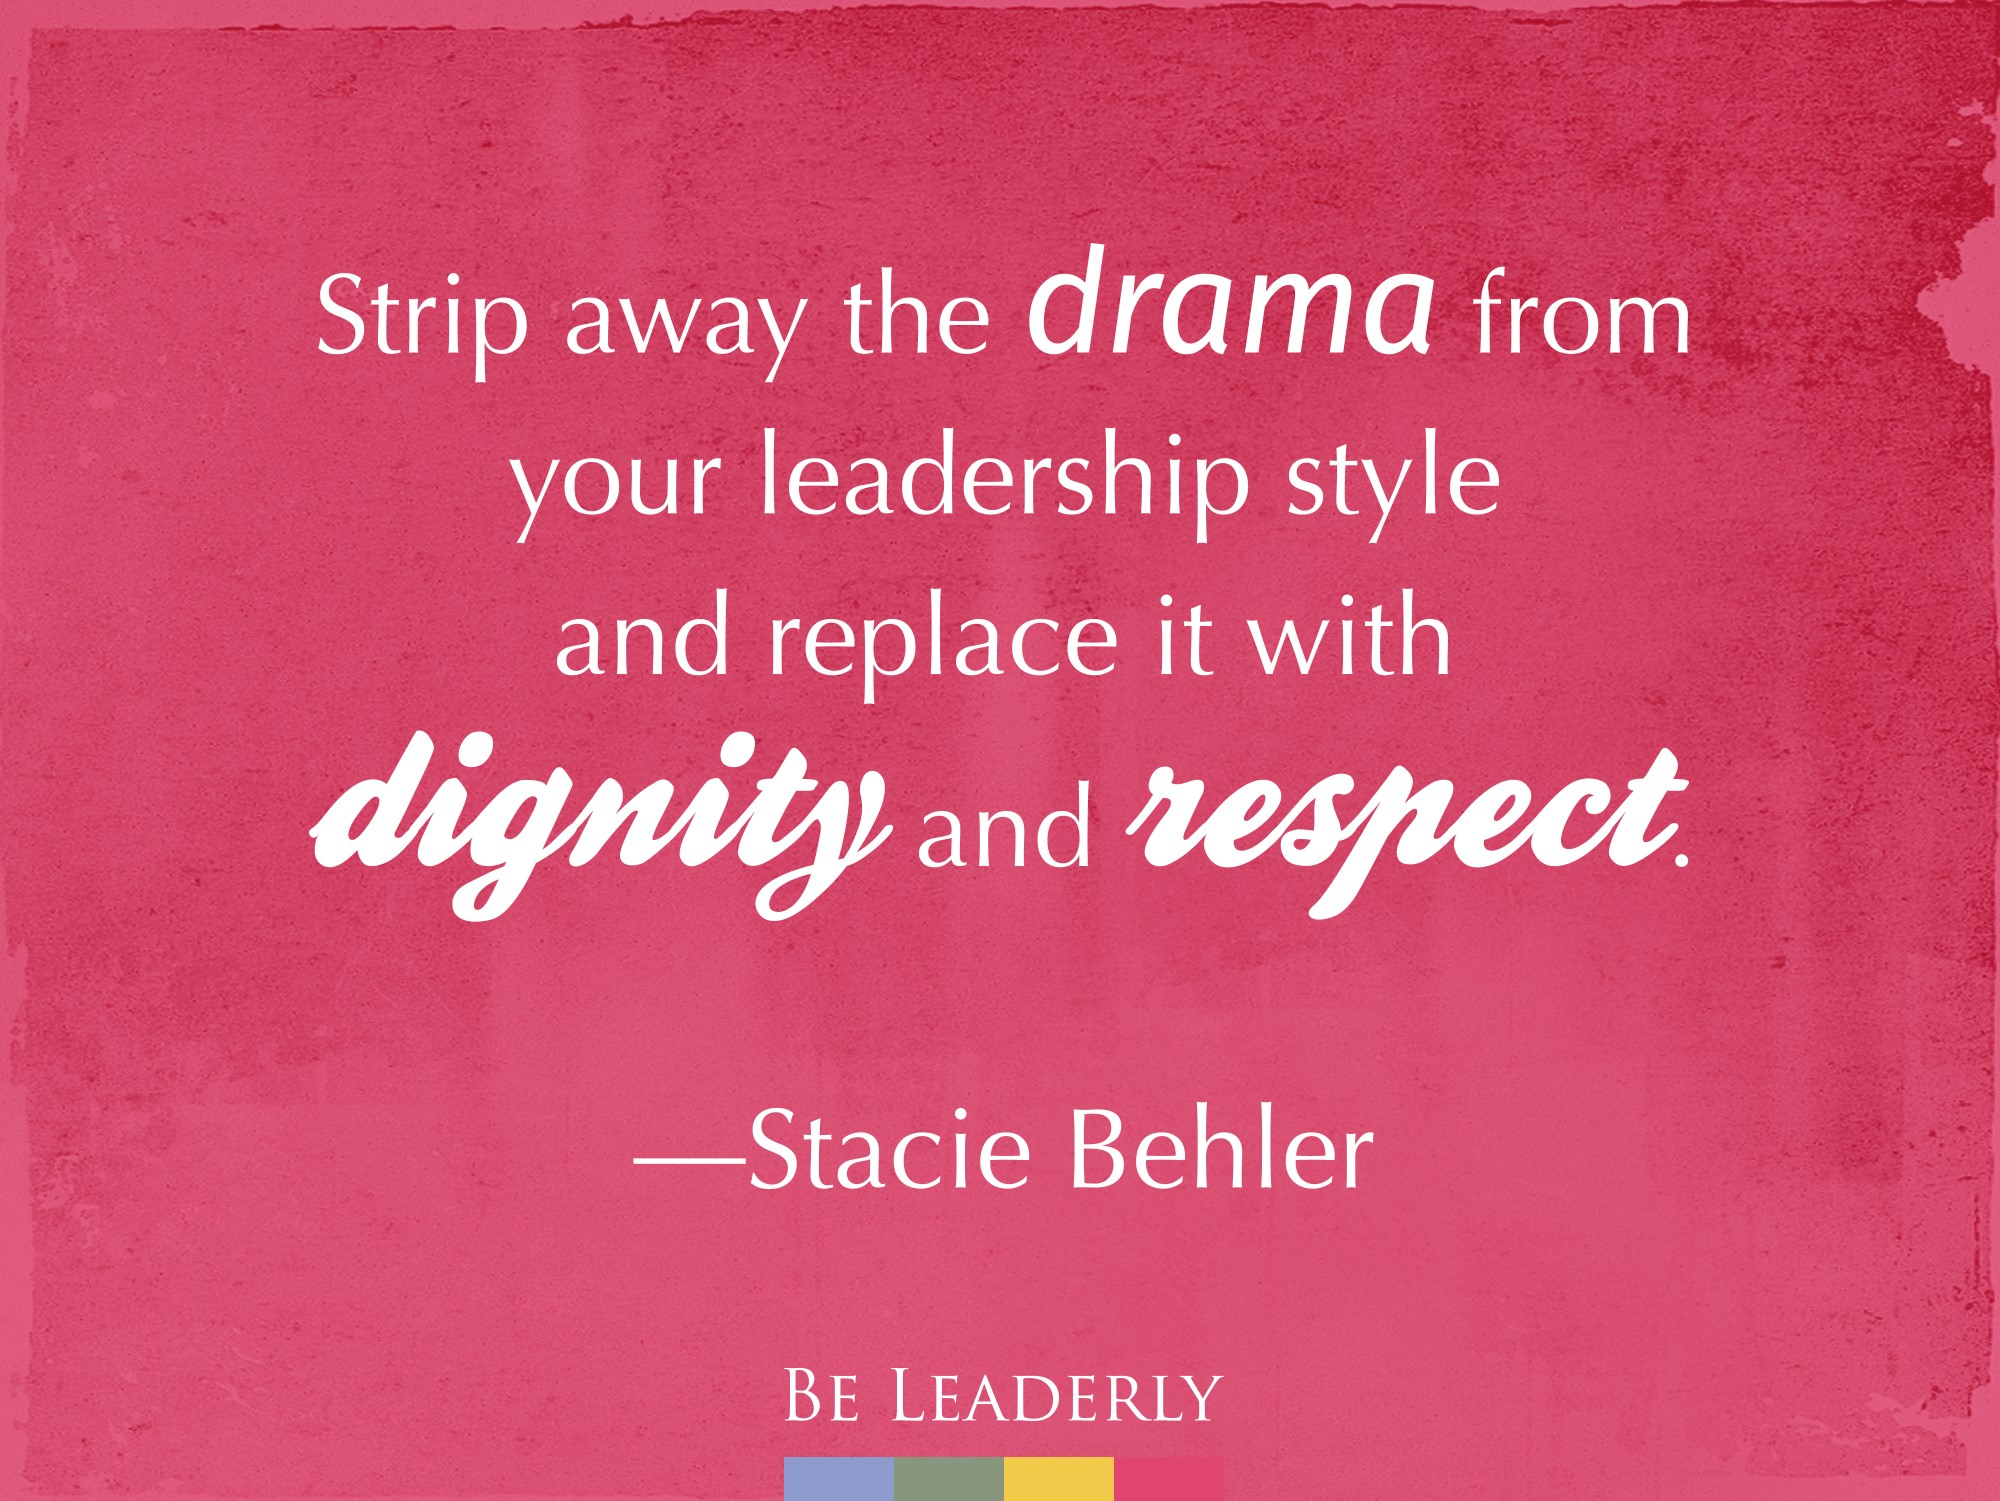 Strip away the drama from your leadership style